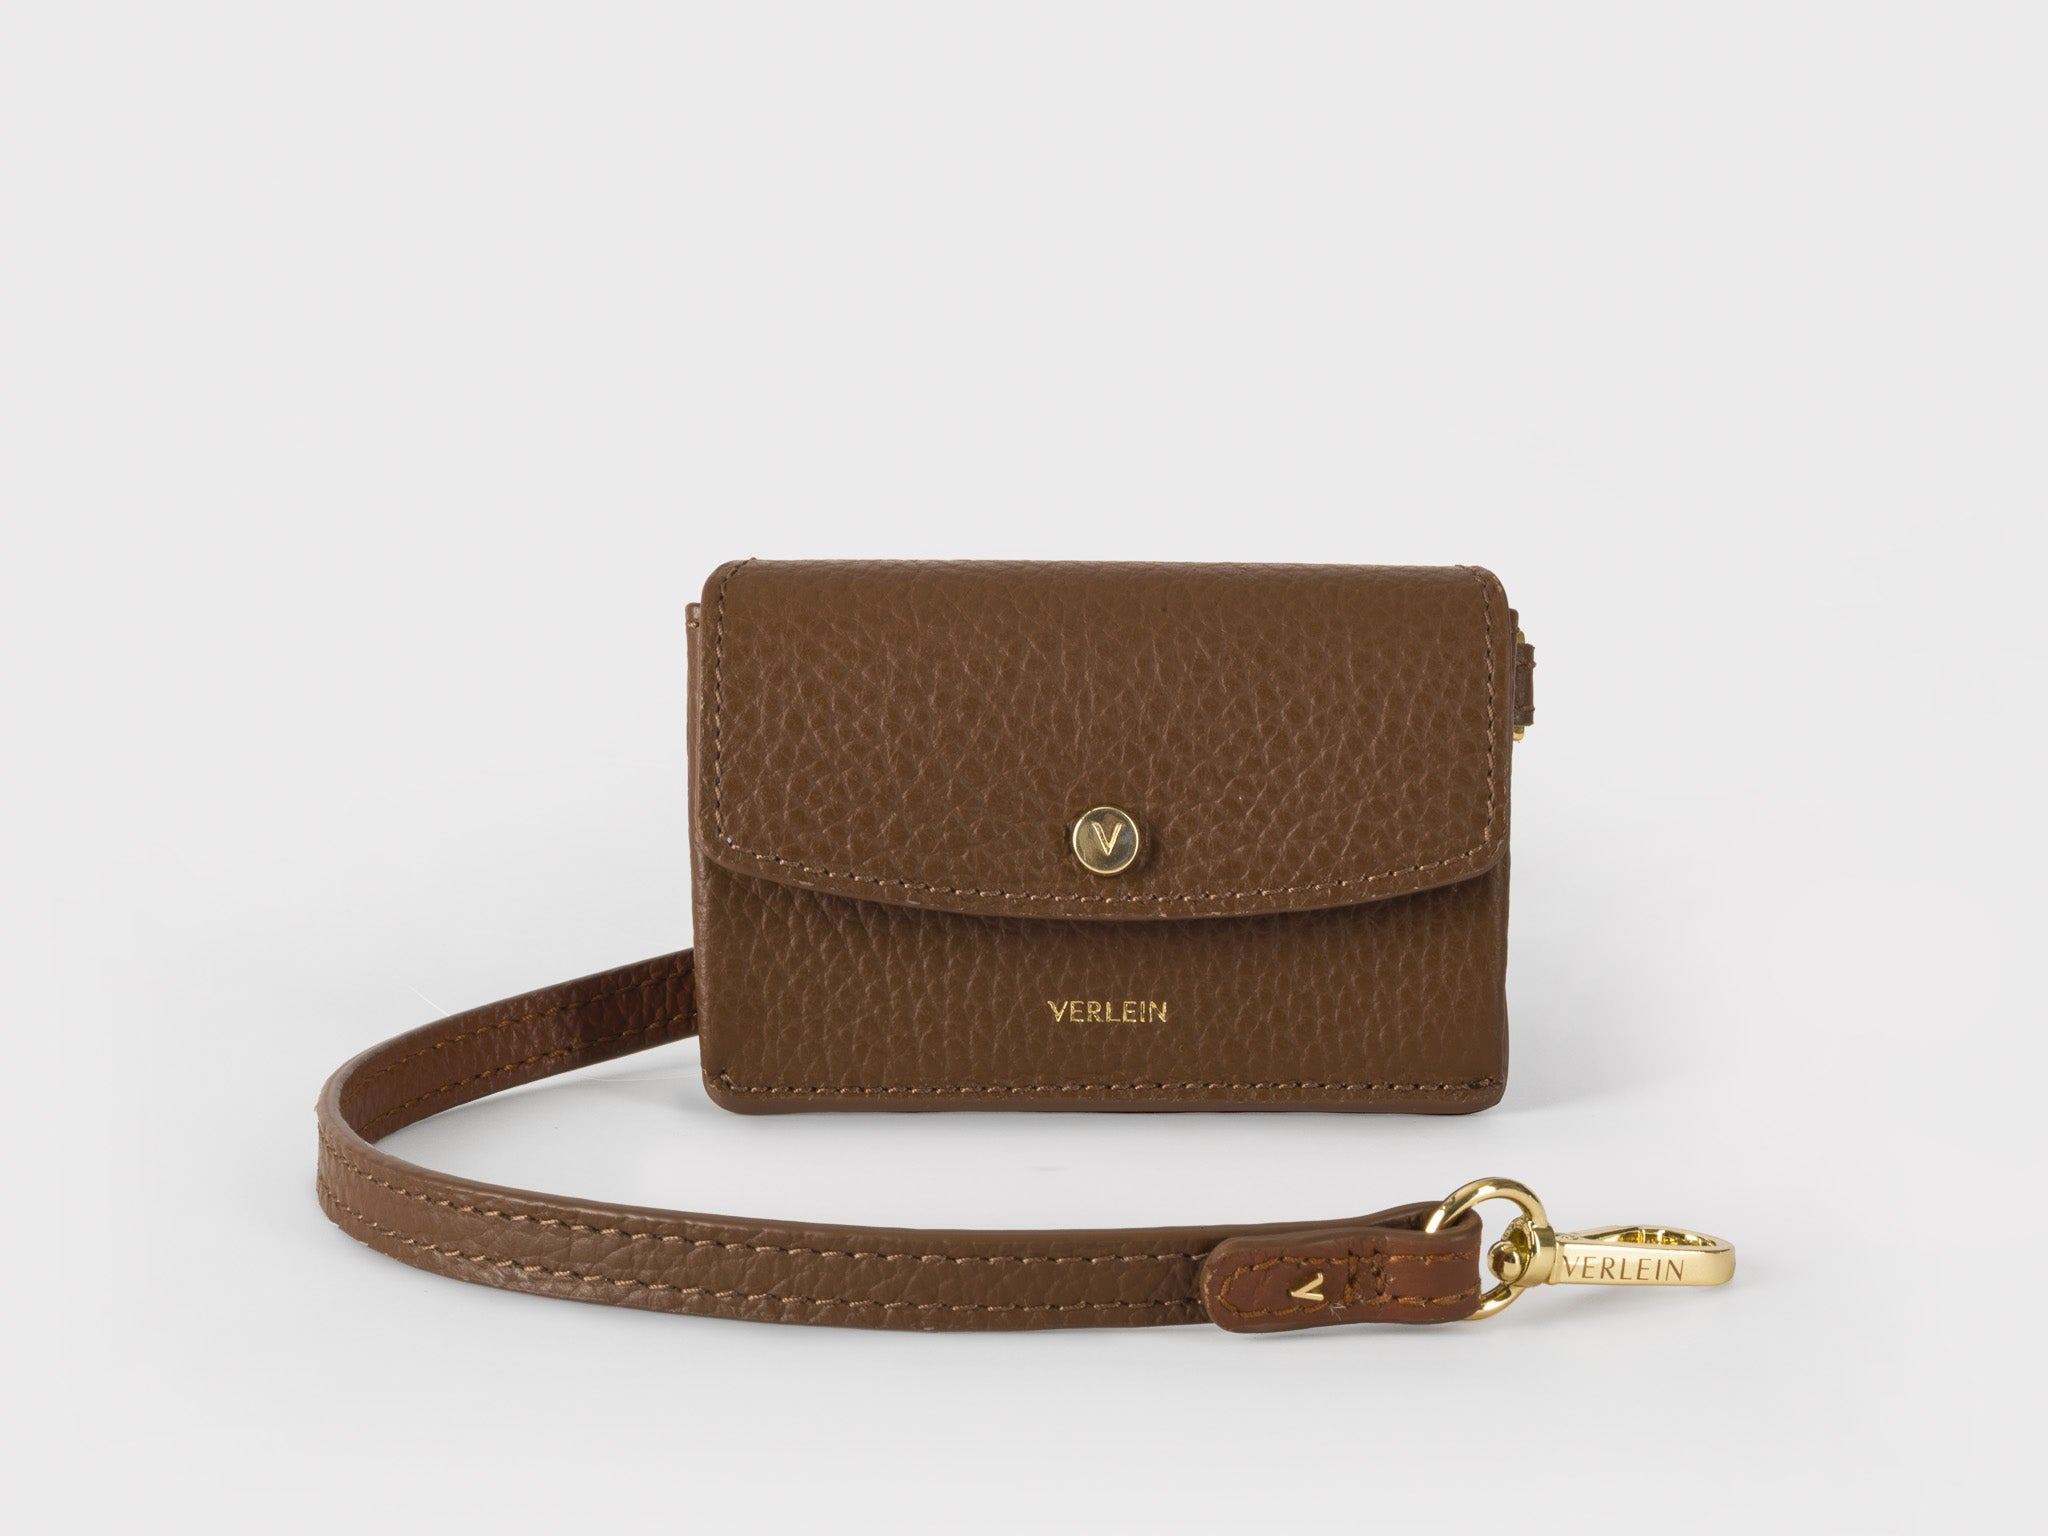 Ines Cinch Coinpurse With Strap, In Chocolate Brown | Verlein